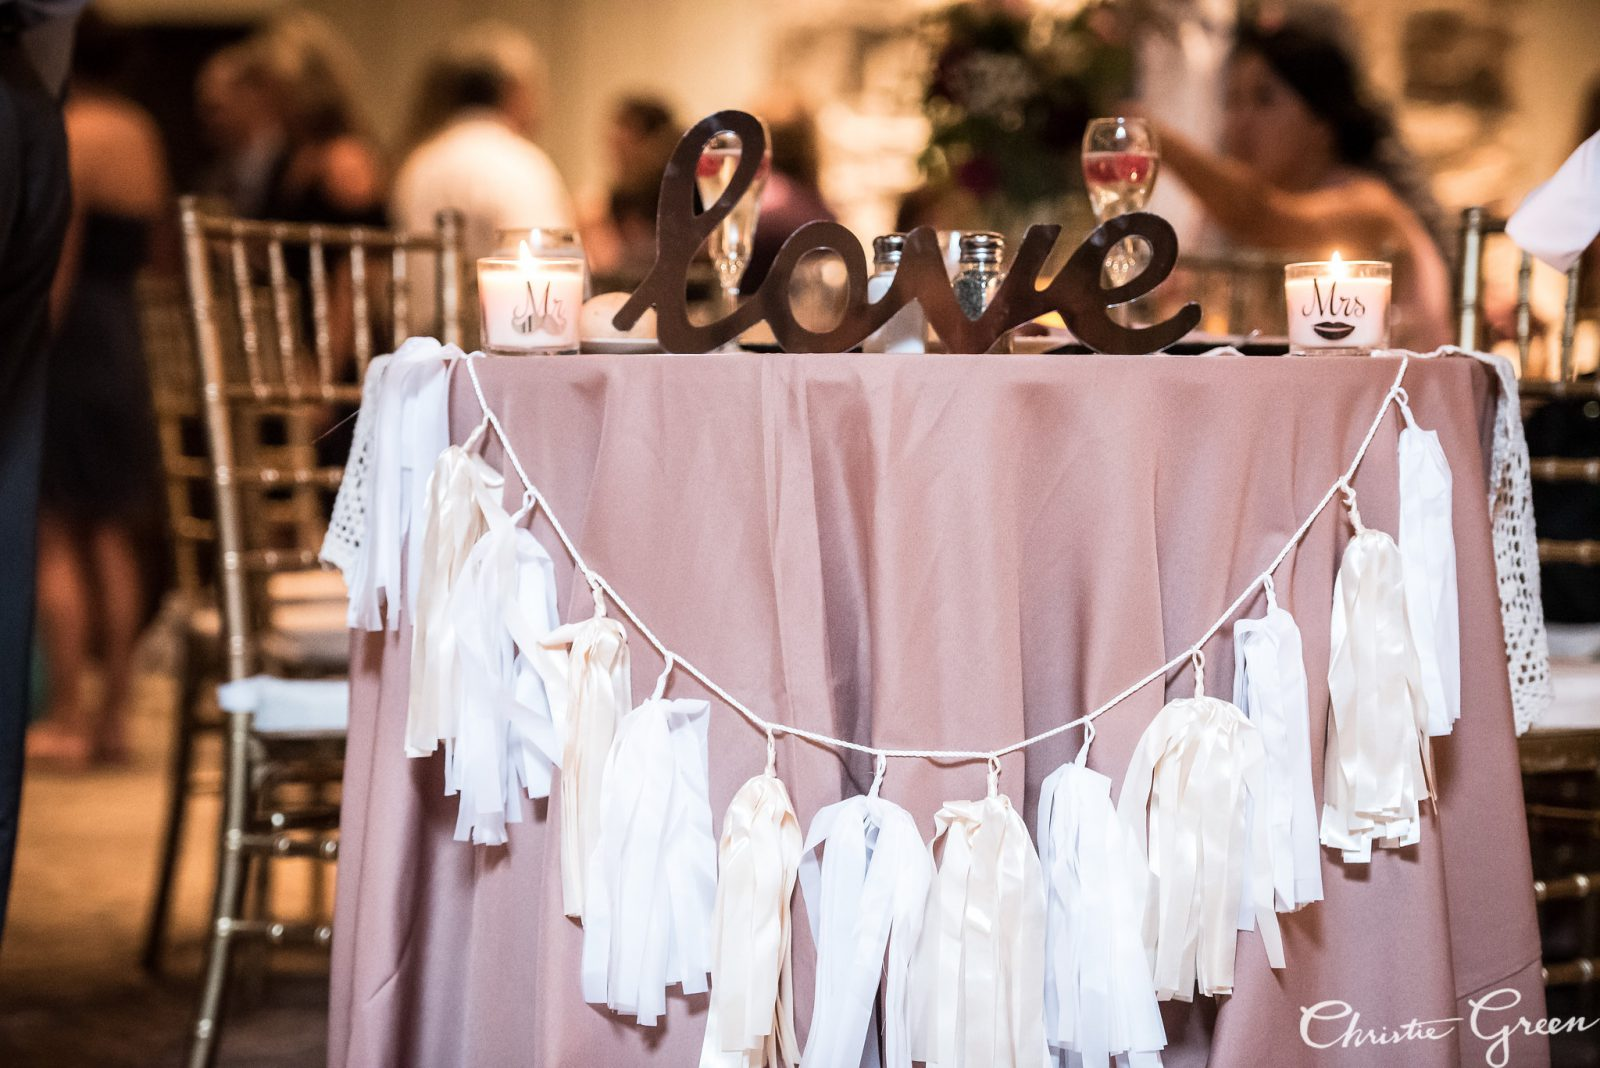 Sweetheart table at Old Mill wedding draped in blush linens and white tassel garland and topped with love sign. Photo by Christie Green Photography